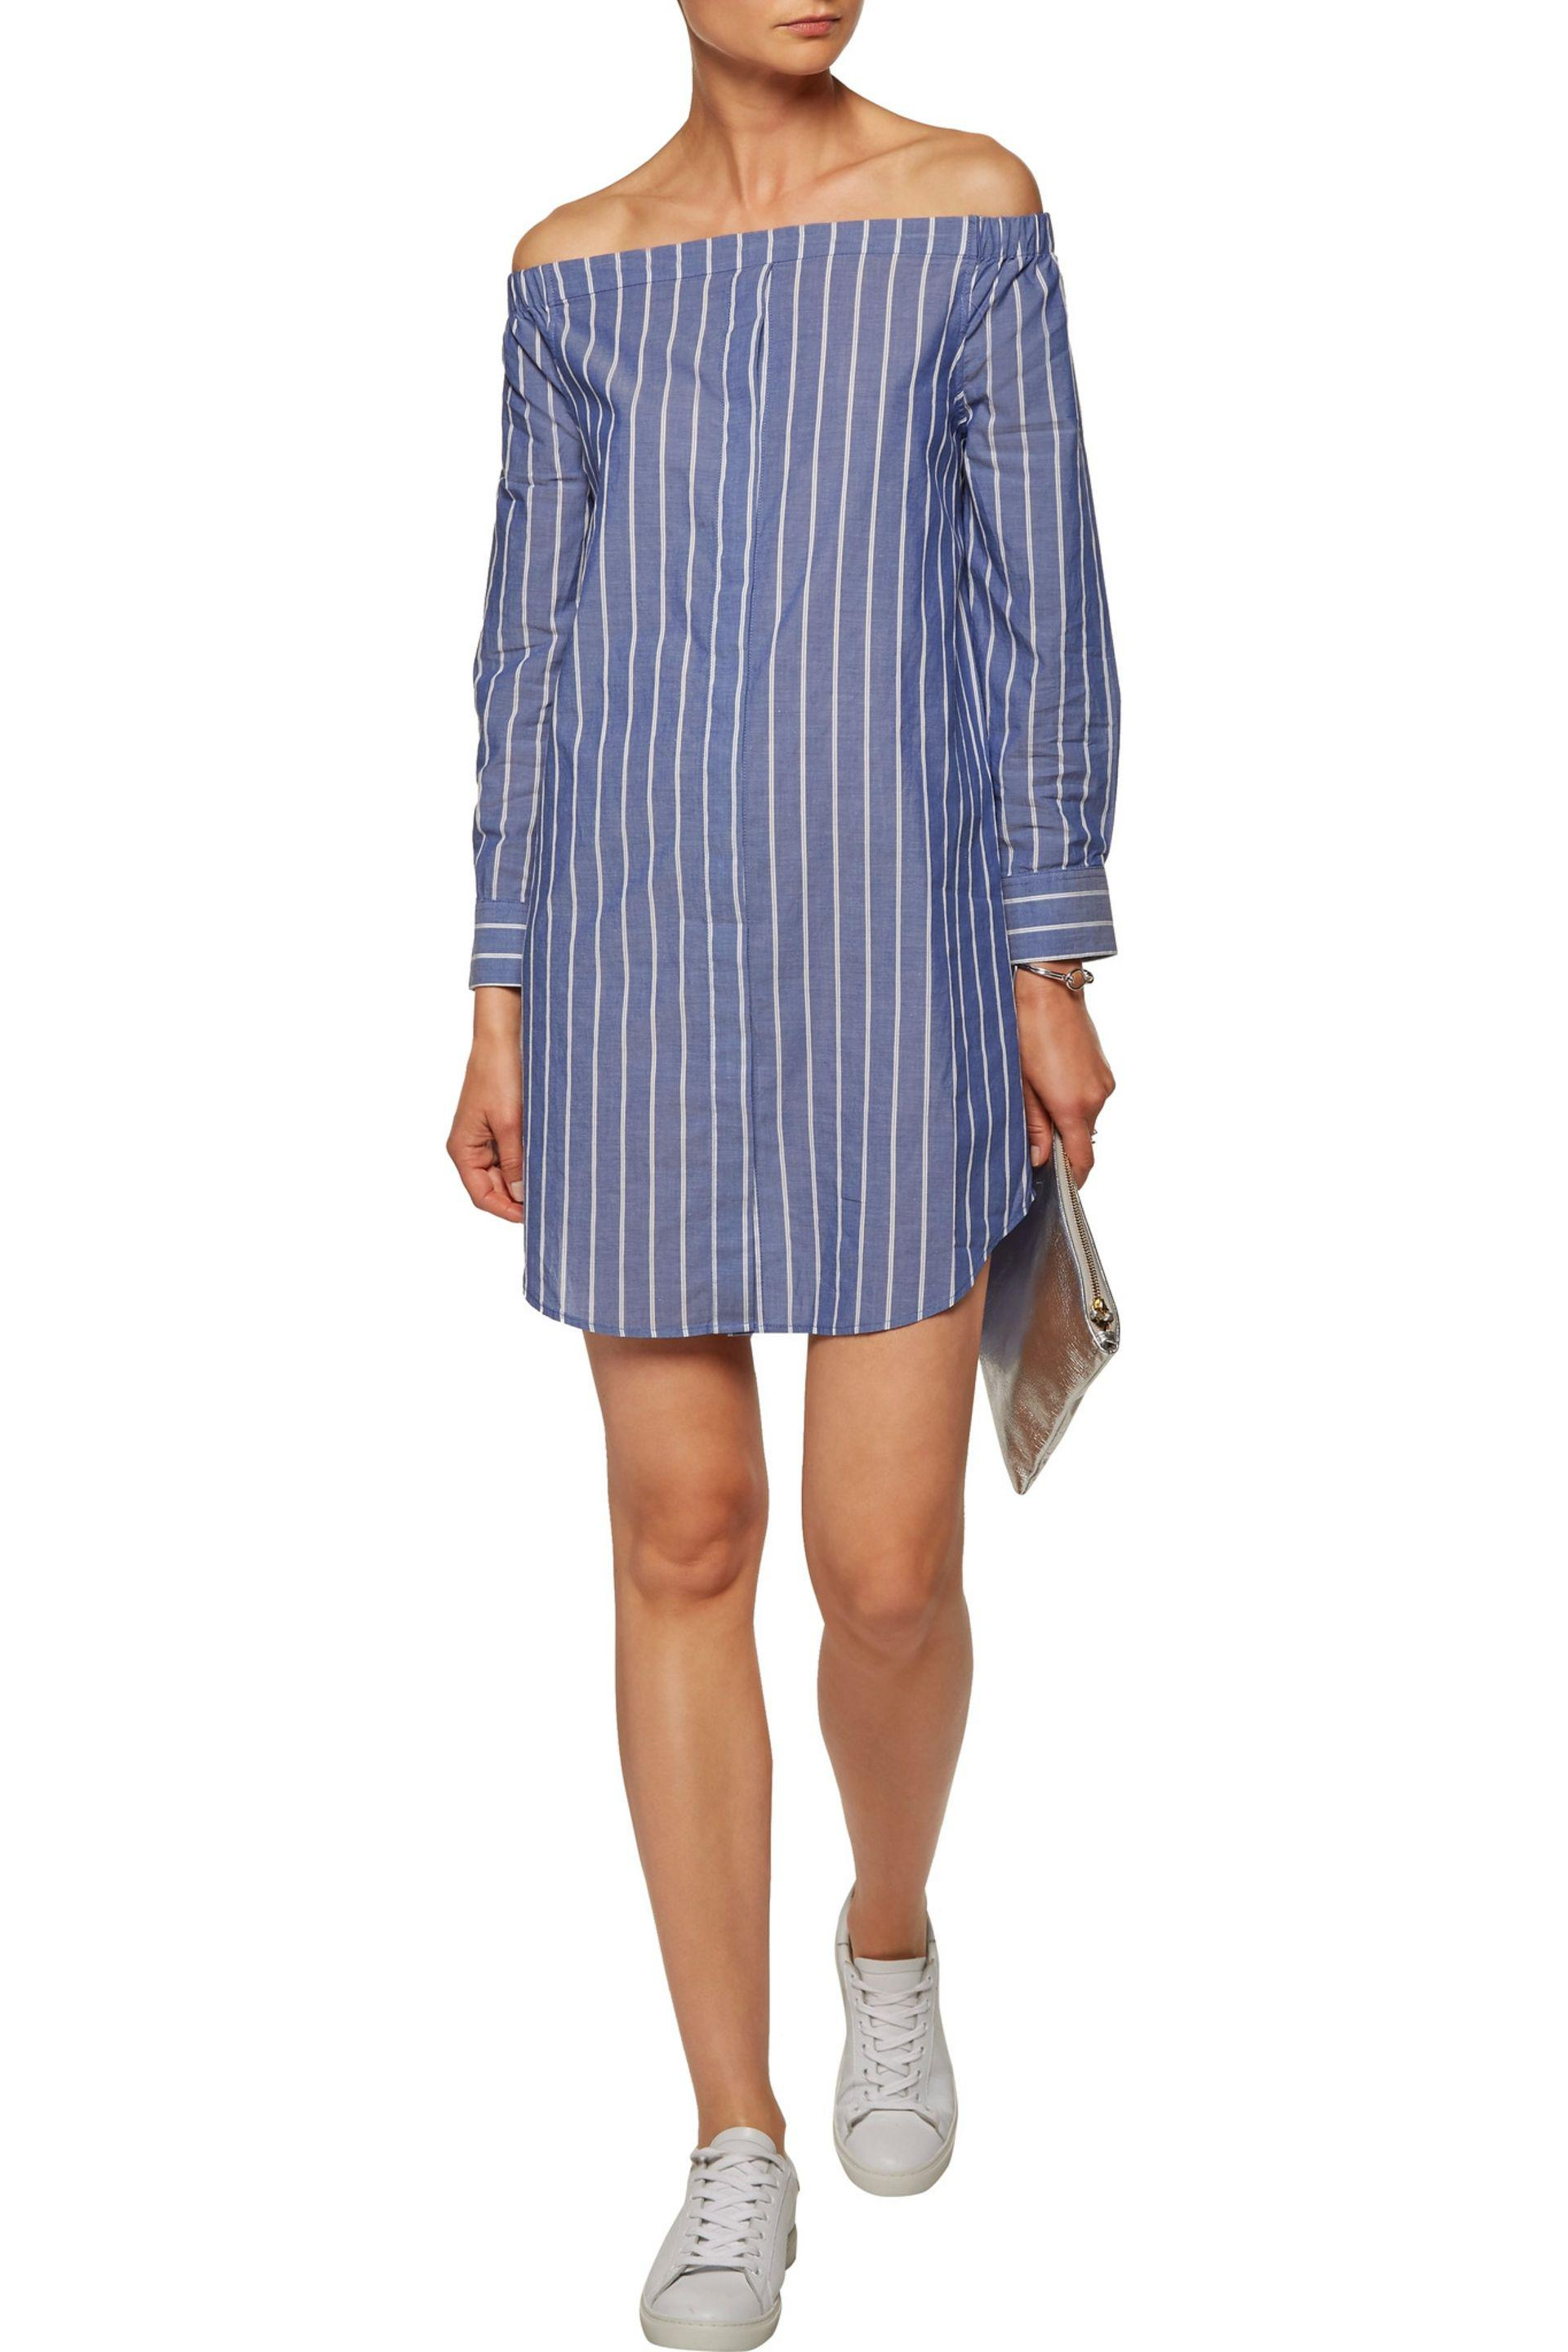 Equipment Striped Mini Dress Enjoy Cheap Price Footlocker Cheap Price Buy Cheap High Quality qKtdBaP